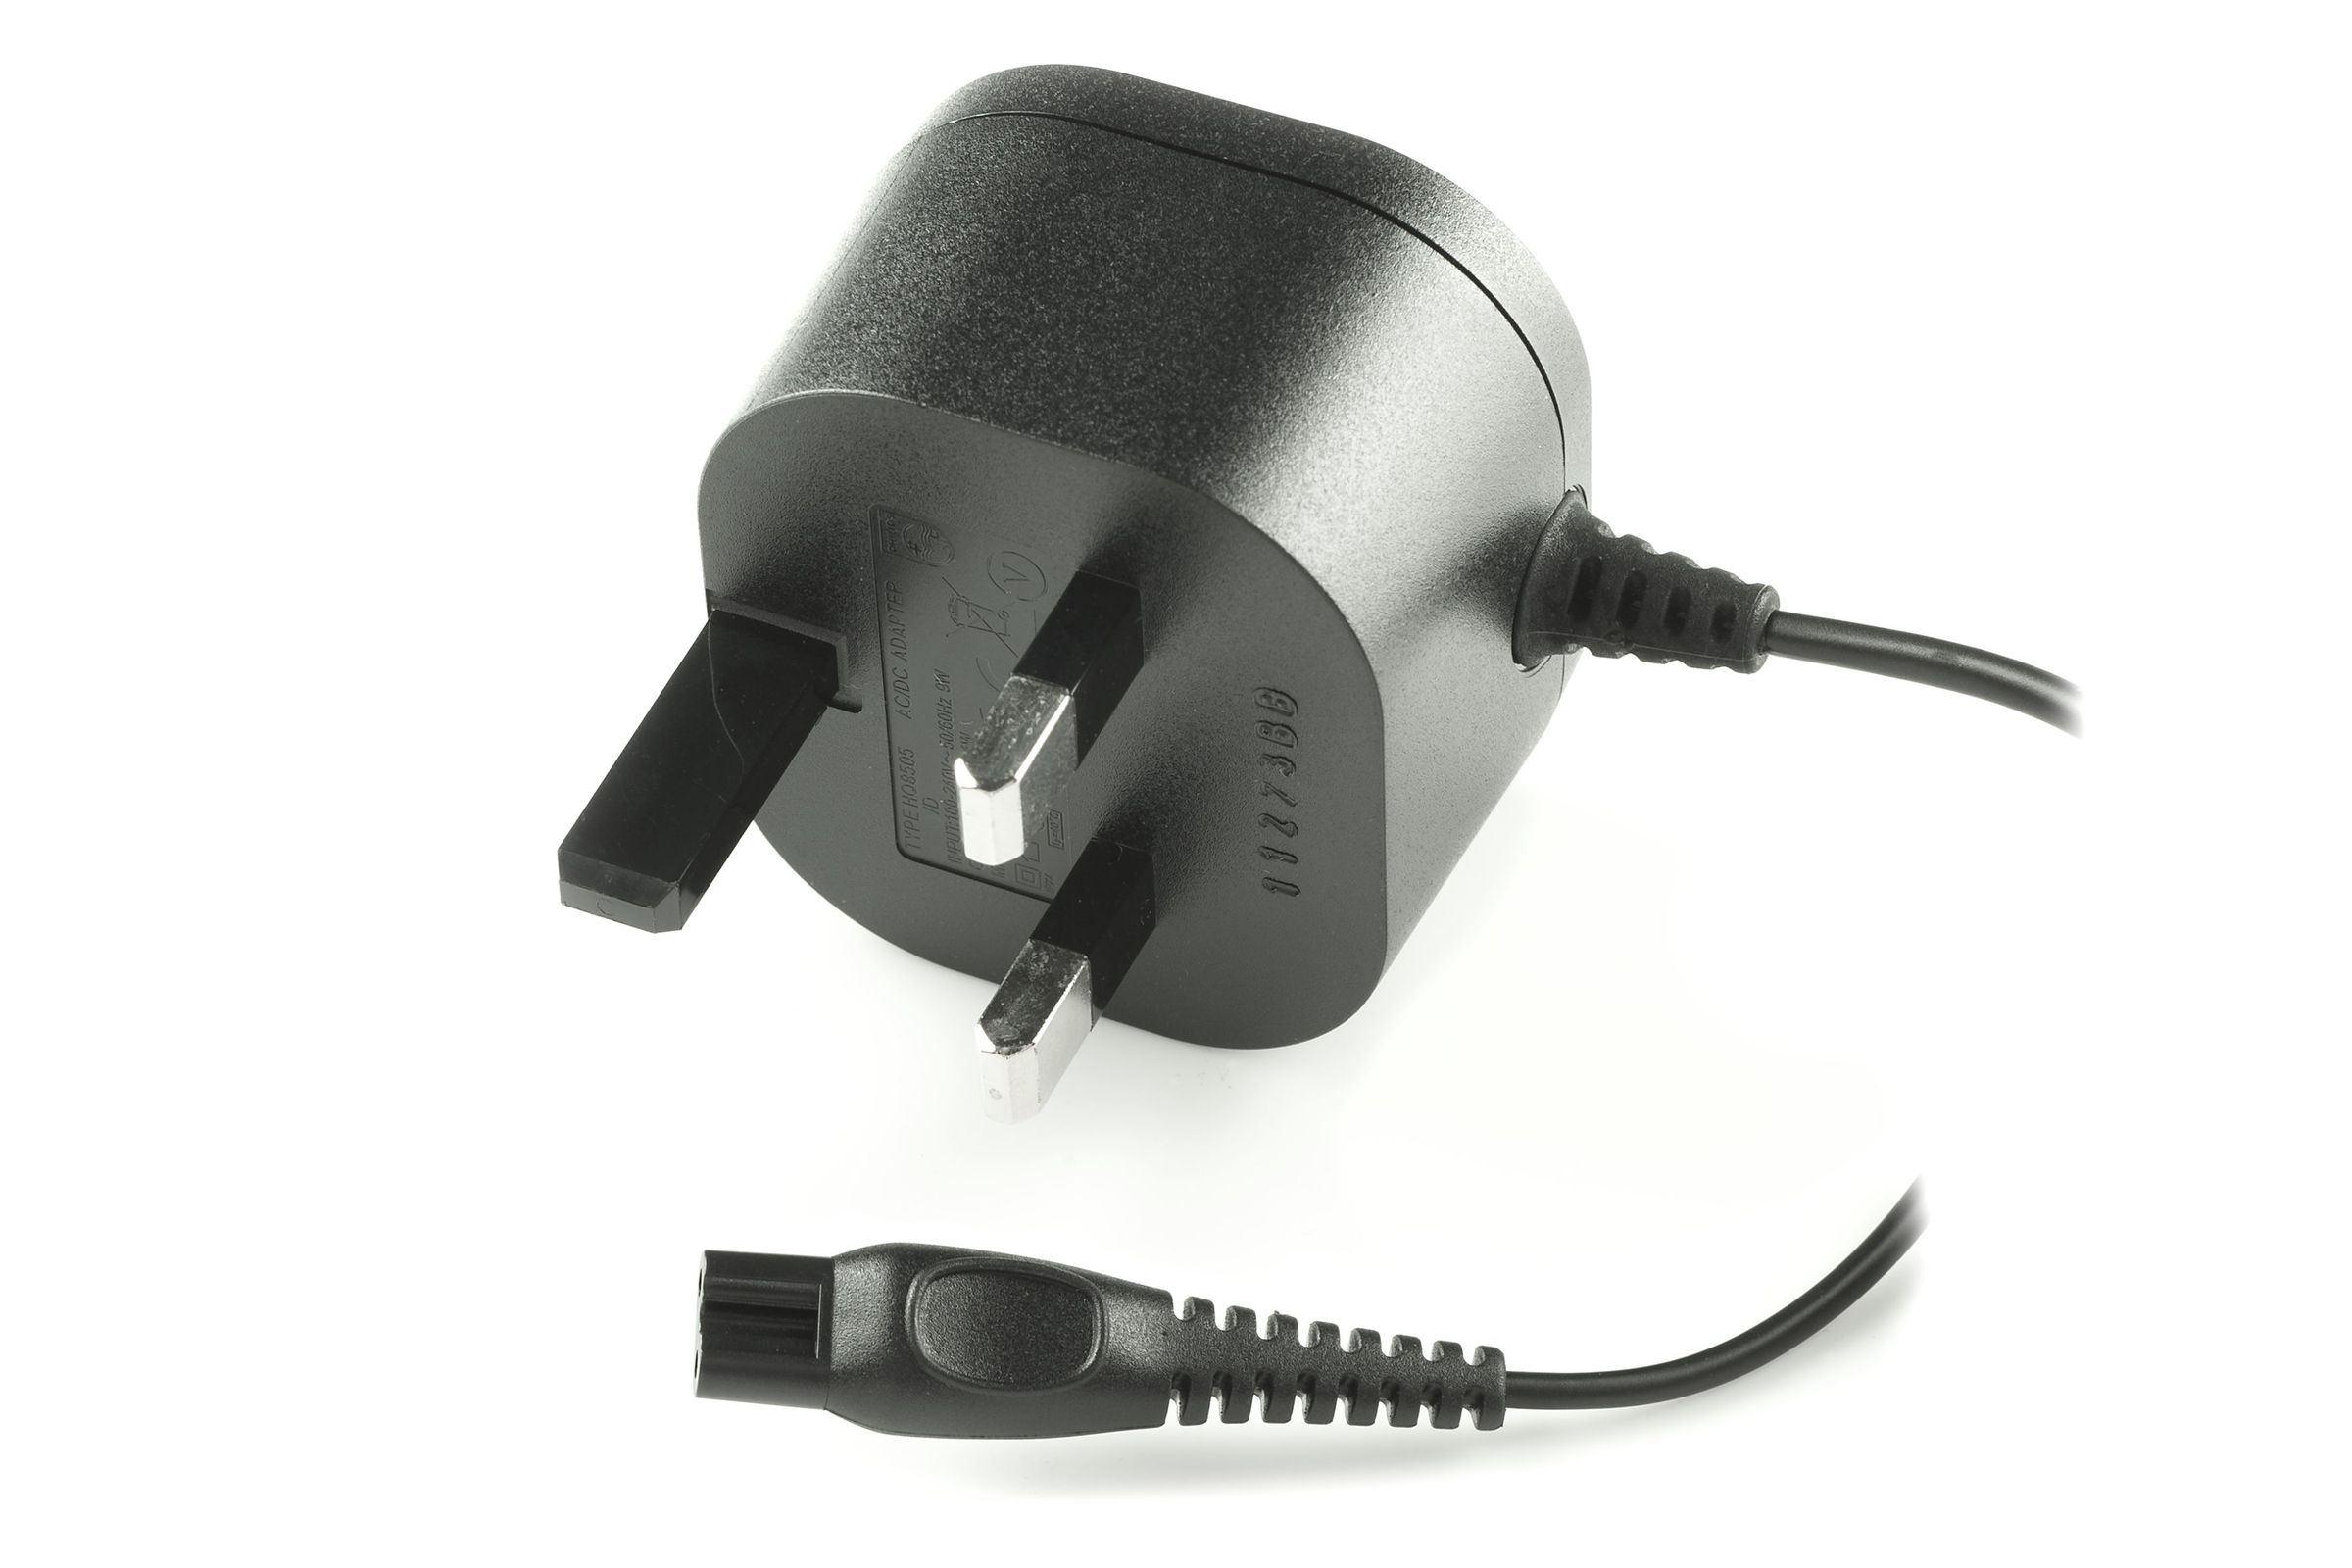 specs philips power cord crp312 01 shaver accessories crp312 01. Black Bedroom Furniture Sets. Home Design Ideas